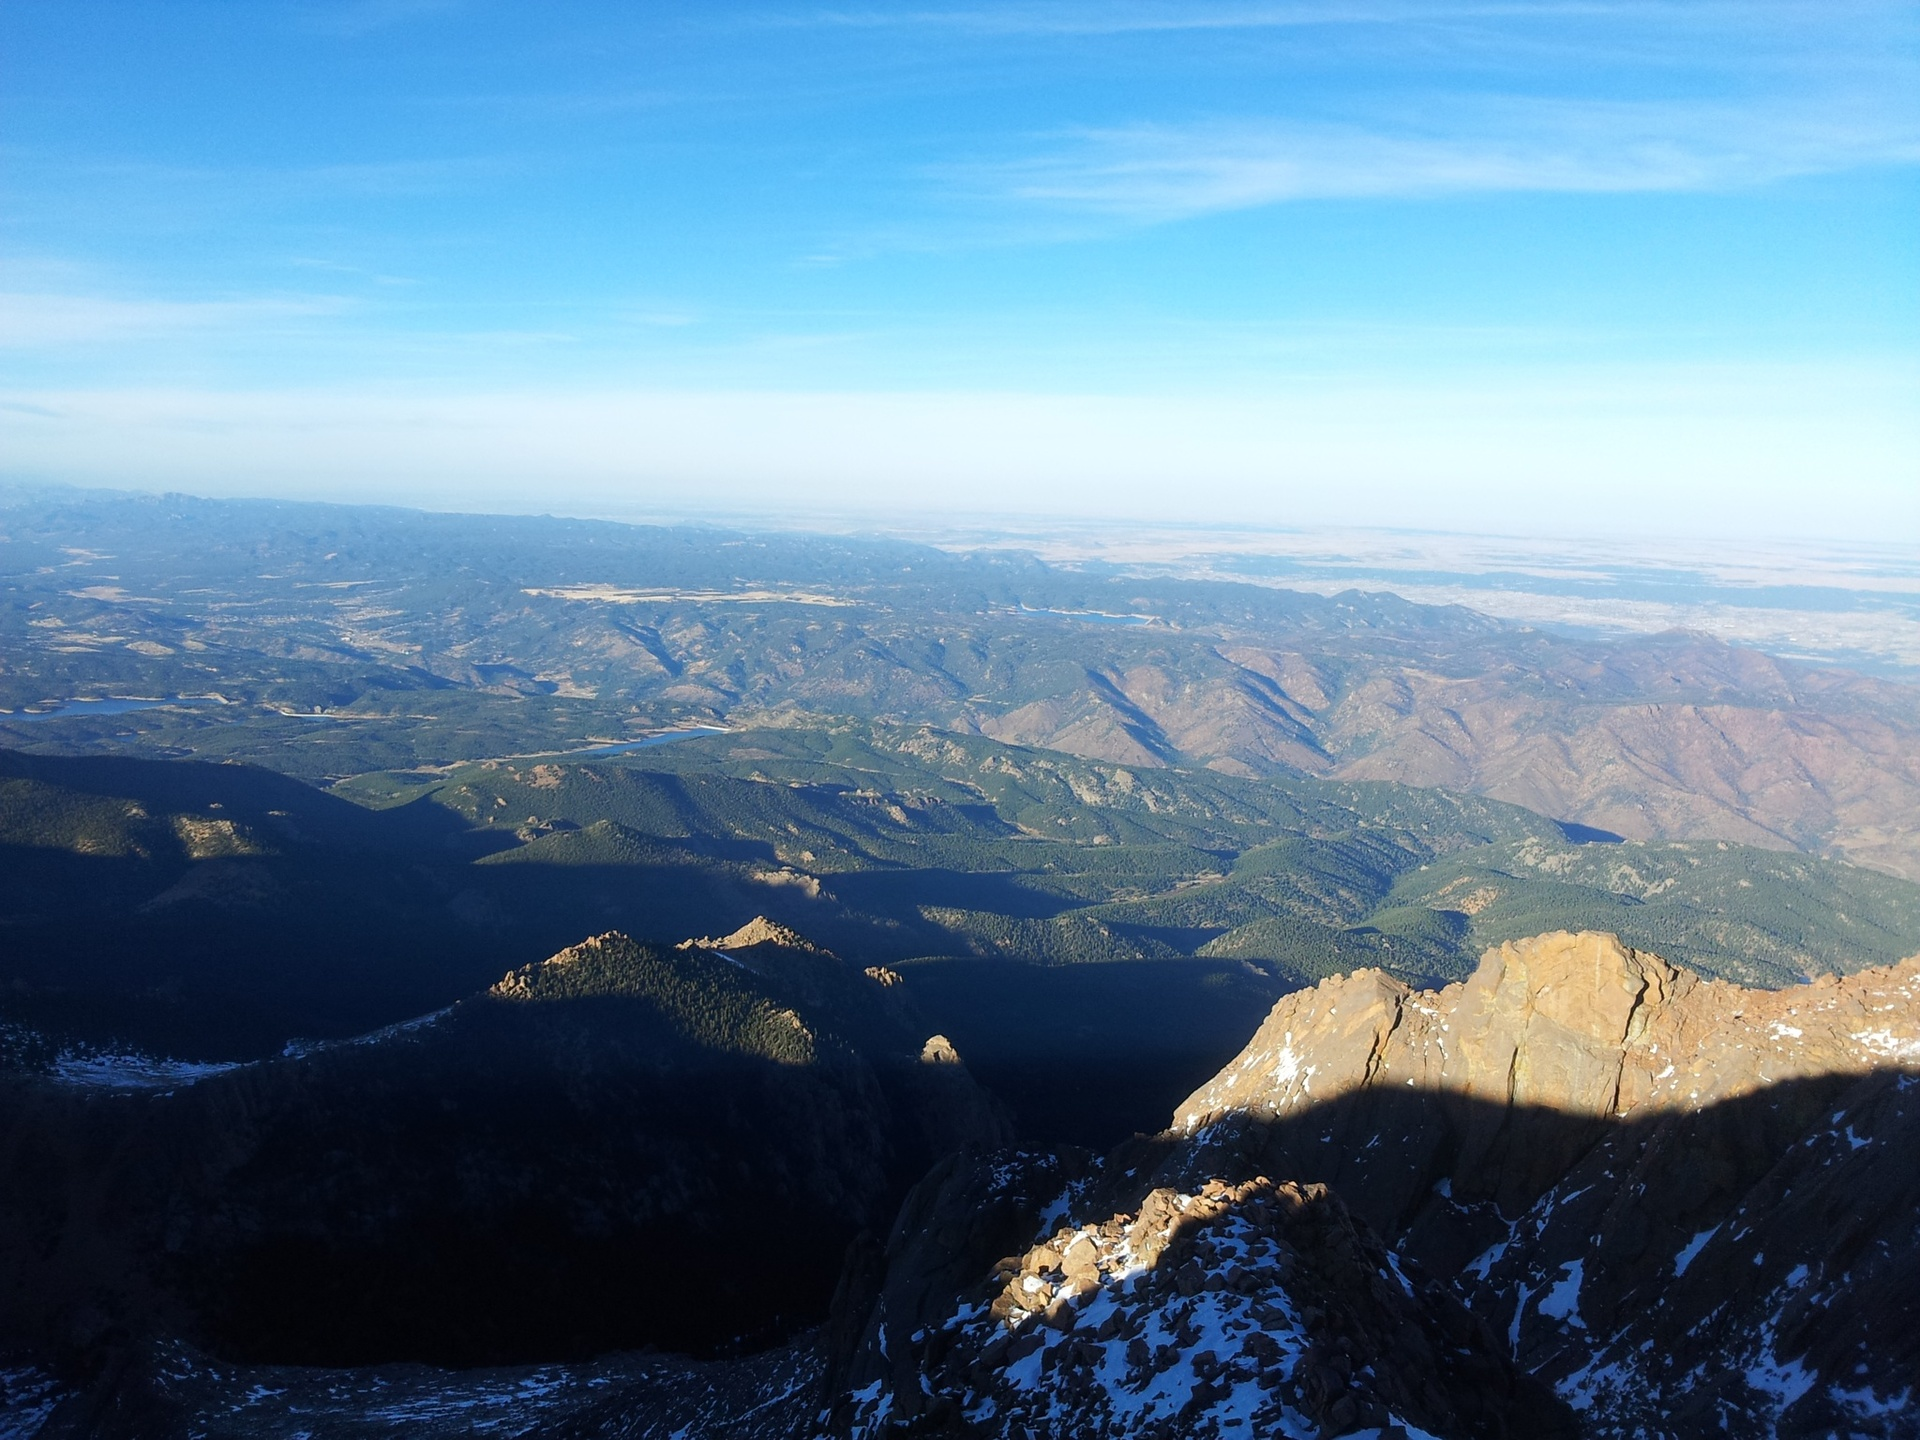 View from top of pikes peak, Colorado at 14,110 feet elevation